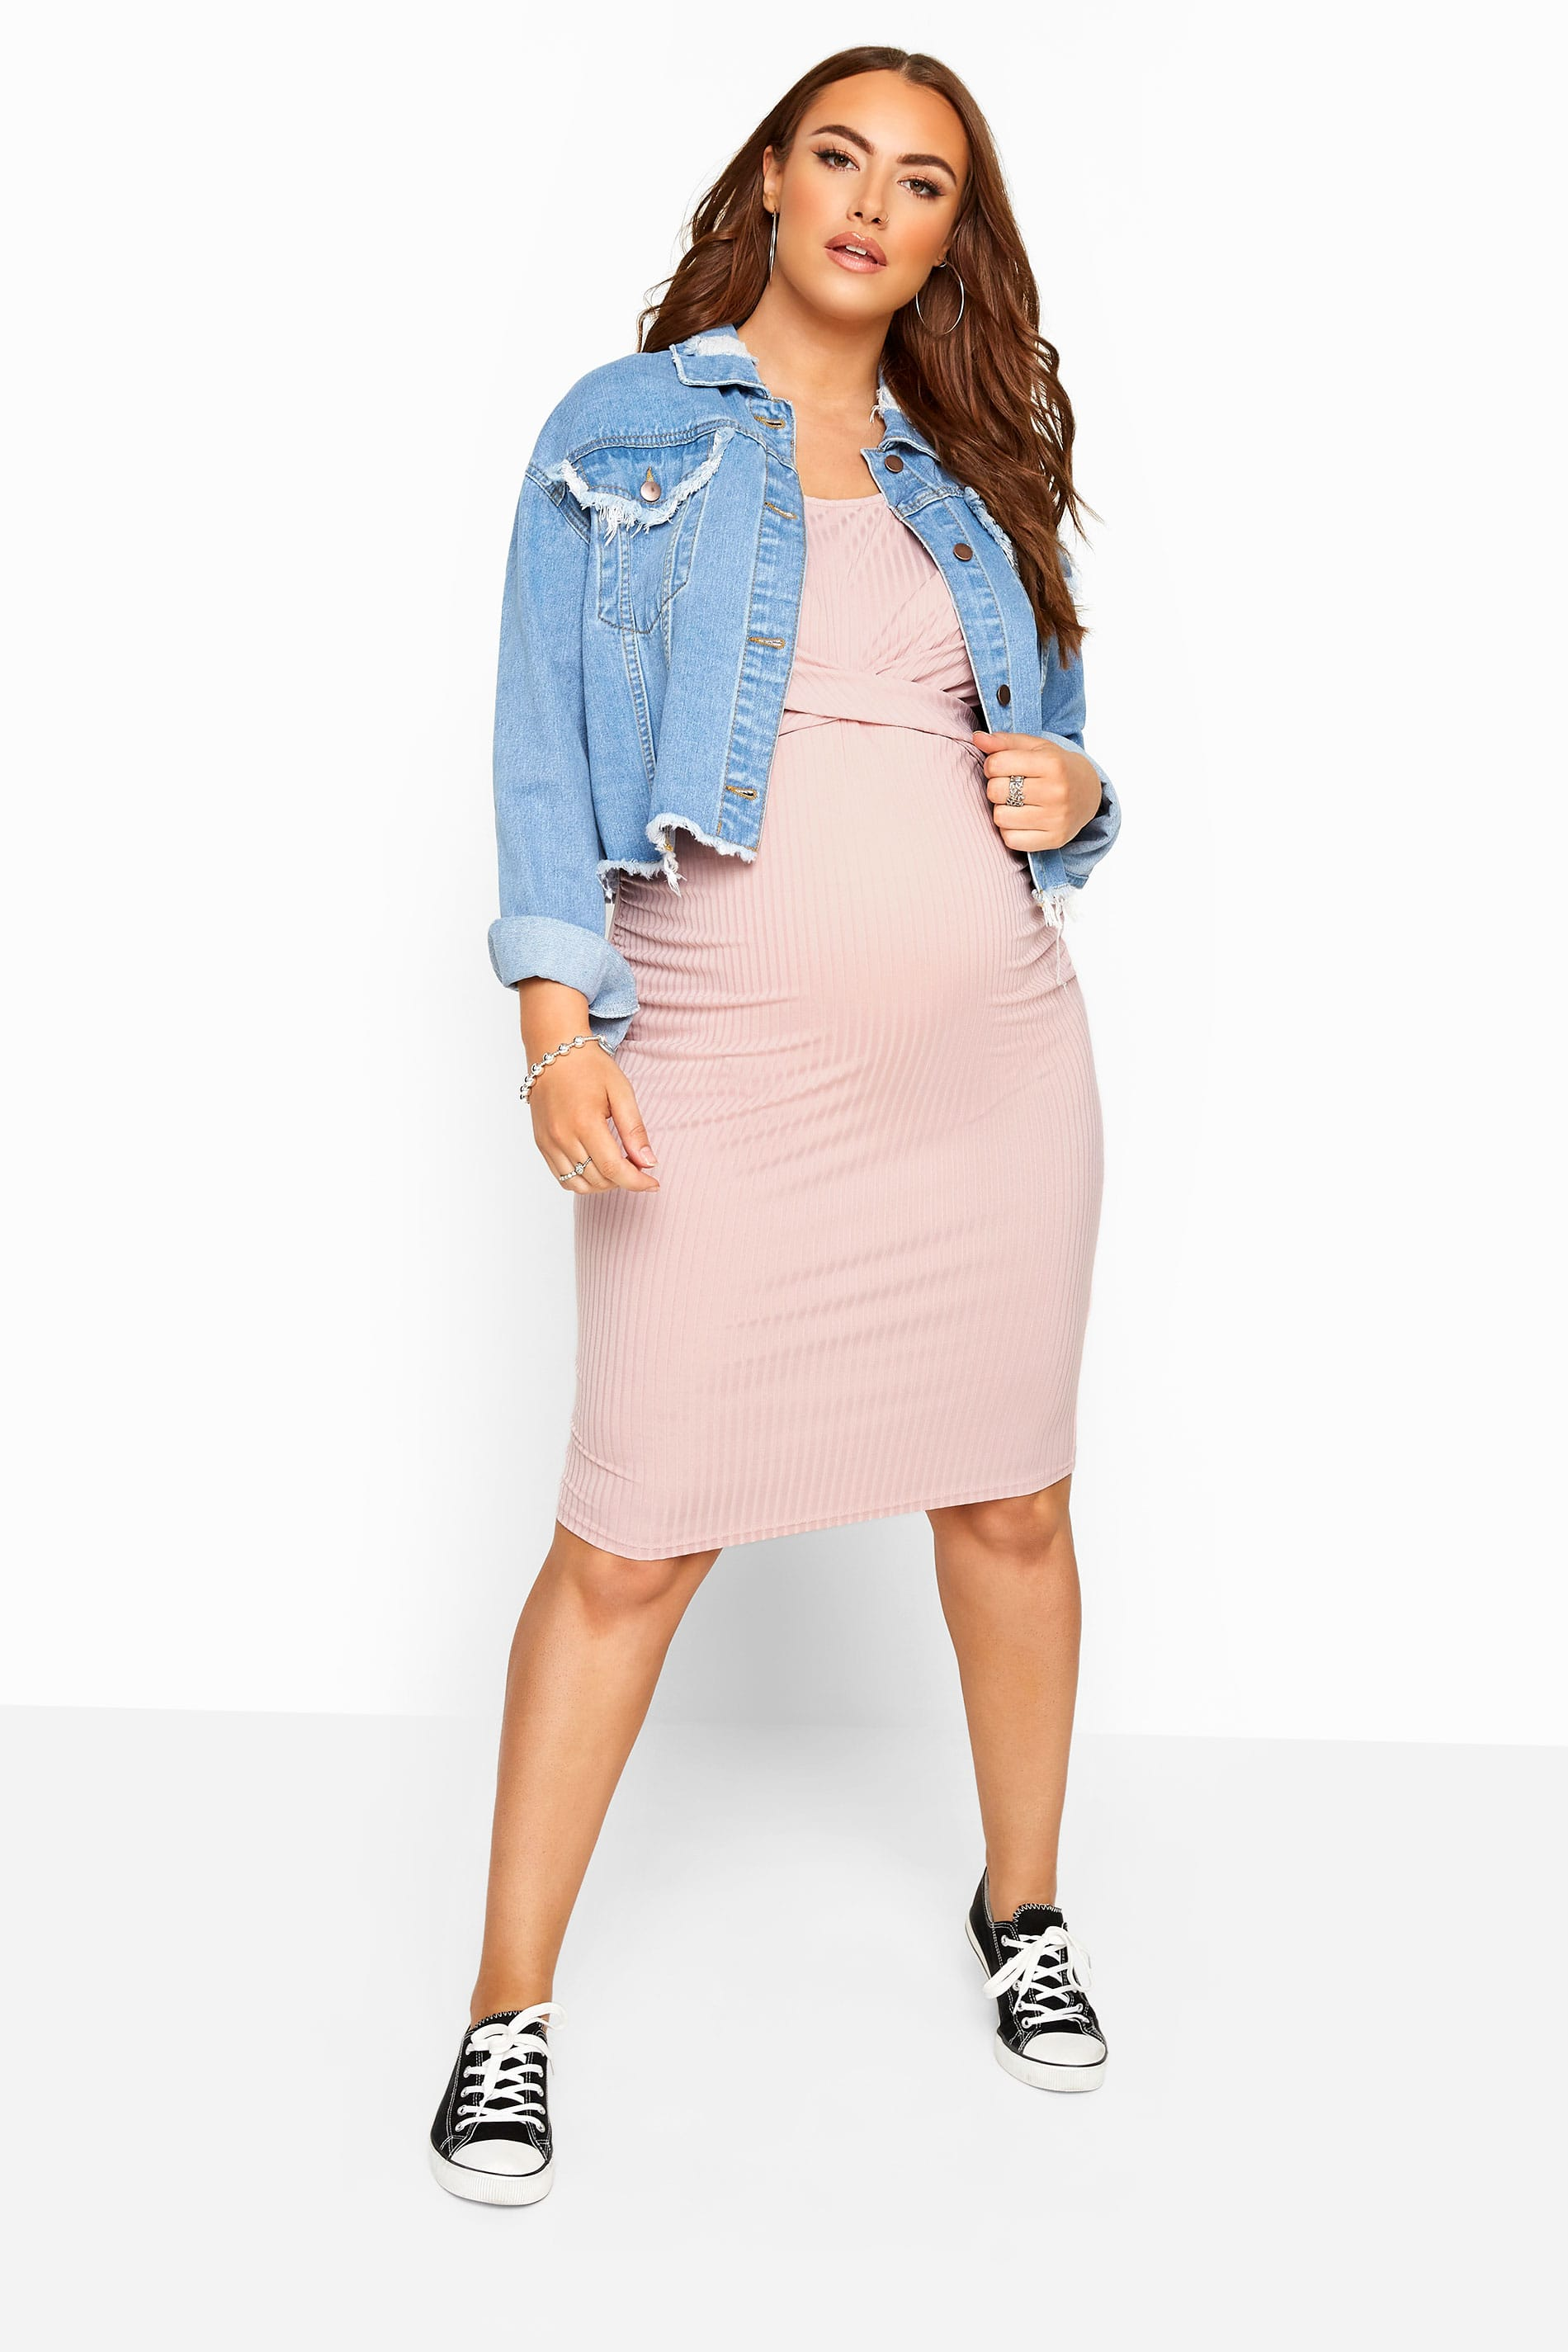 BUMP IT UP MATERNITY - Geribbelde bodycon jurk in roze